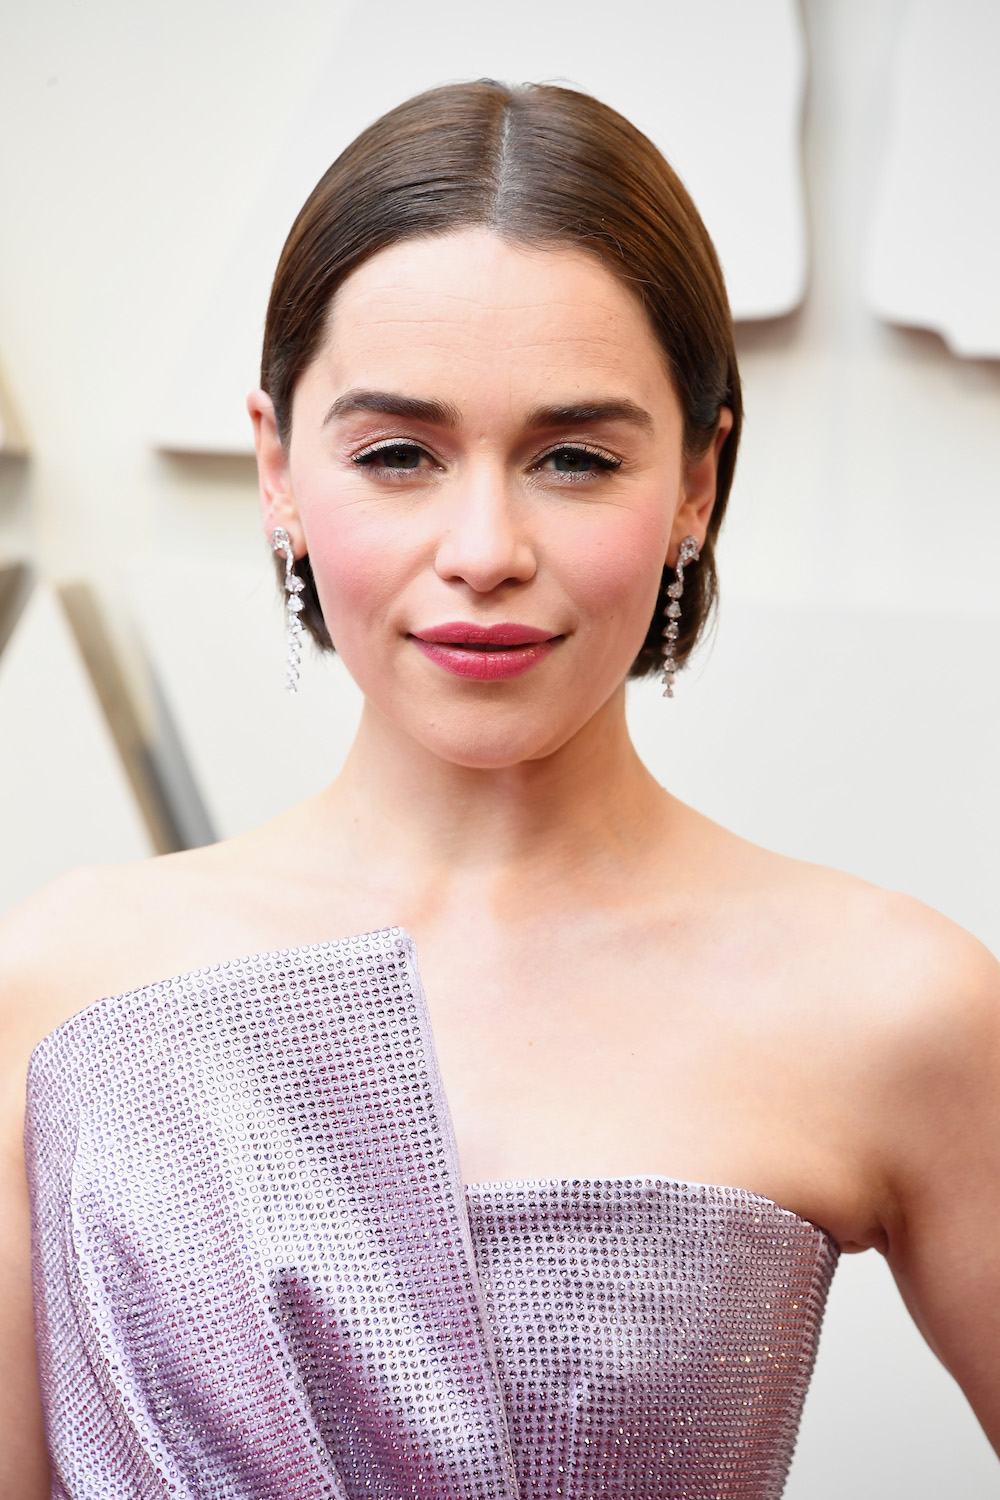 Emilia Clarke Dyes Hair Brown With Box Dye For Oscars Red Carpet Look Hellogiggles